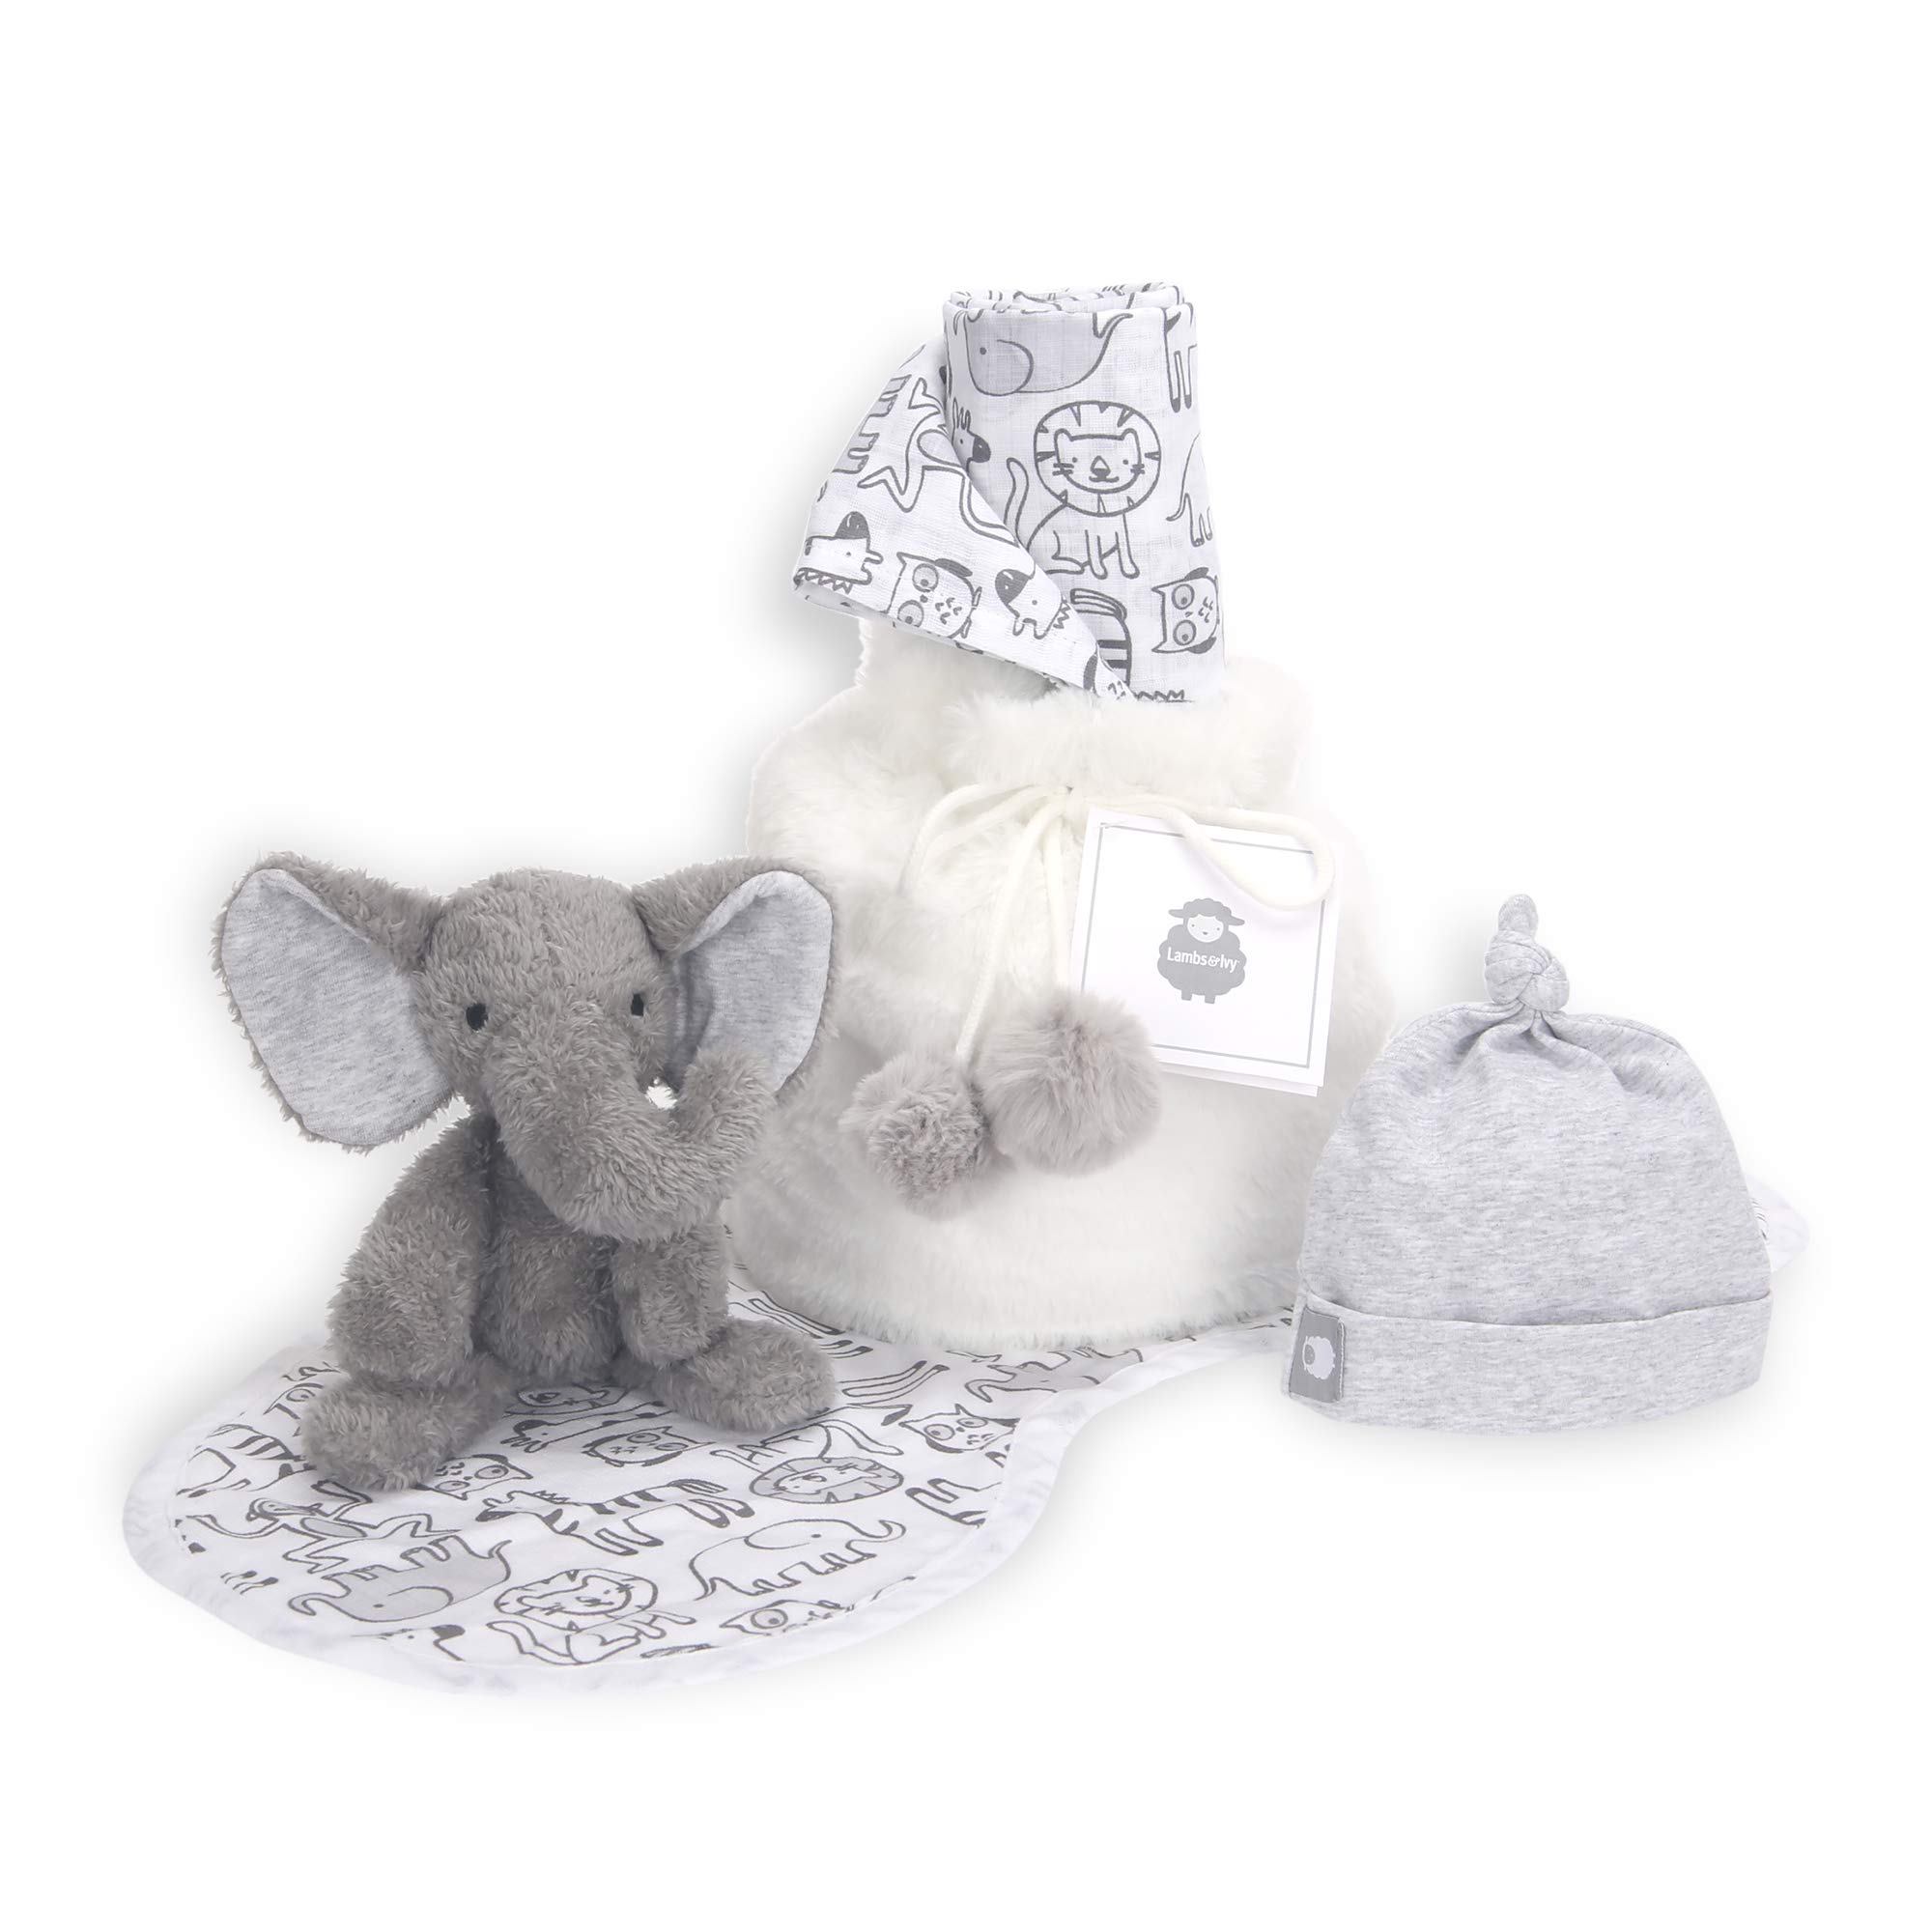 Lambs & Ivy 5 Piece Gray/White Baby Gift Bag for Infant/Newborn Baby Shower Gift